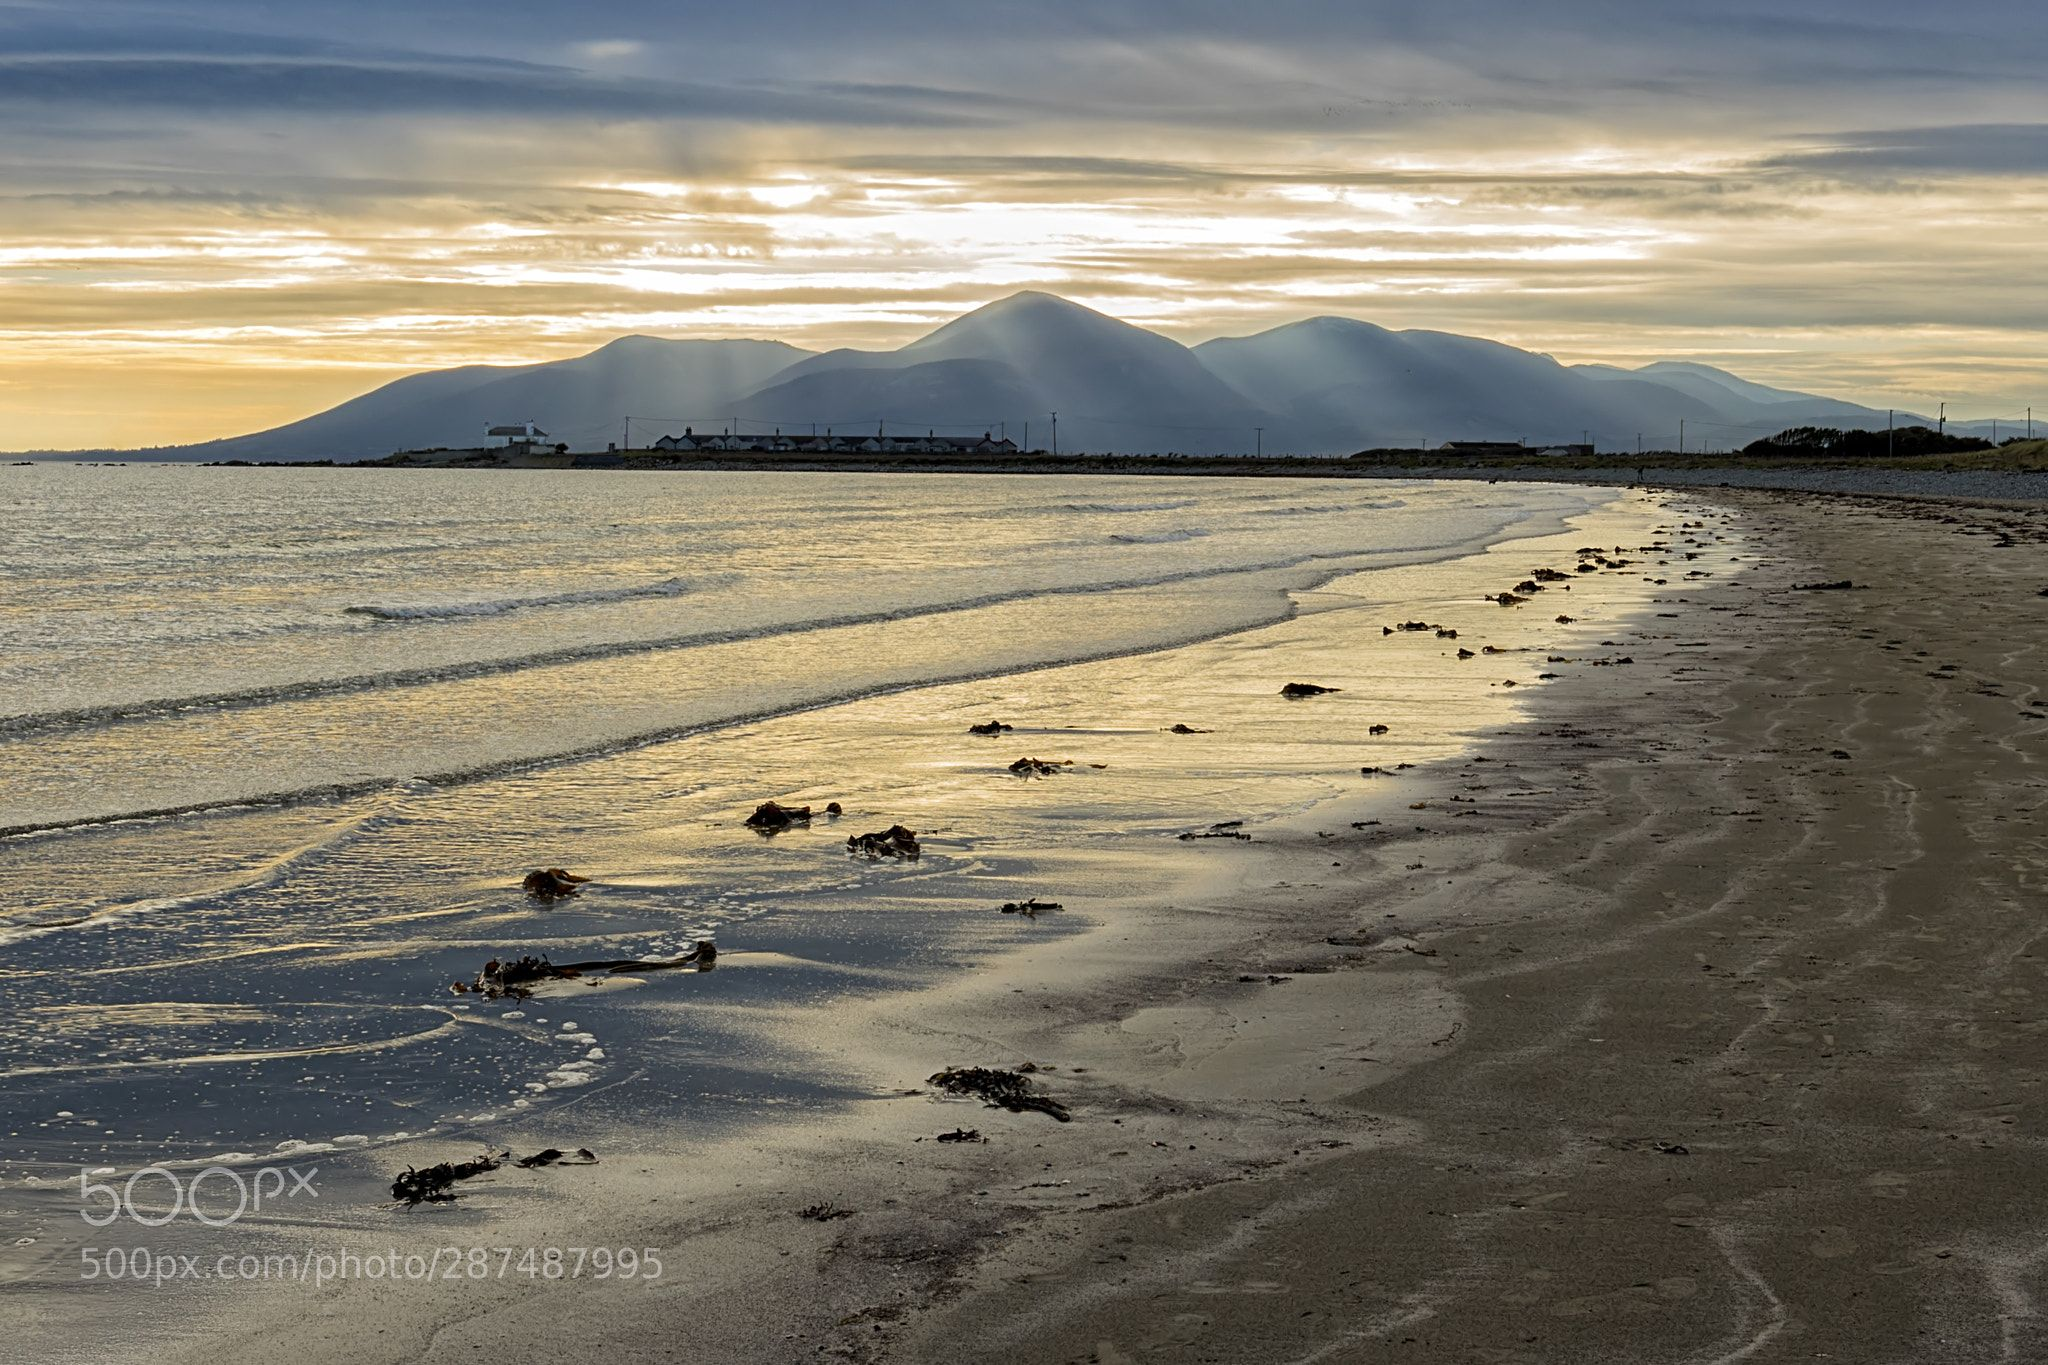 Mourne Silhouette From Tyrella Beach A View Of The Mourne Mountains Merry Christmas To You All Landscape Photo Beautiful Landscapes